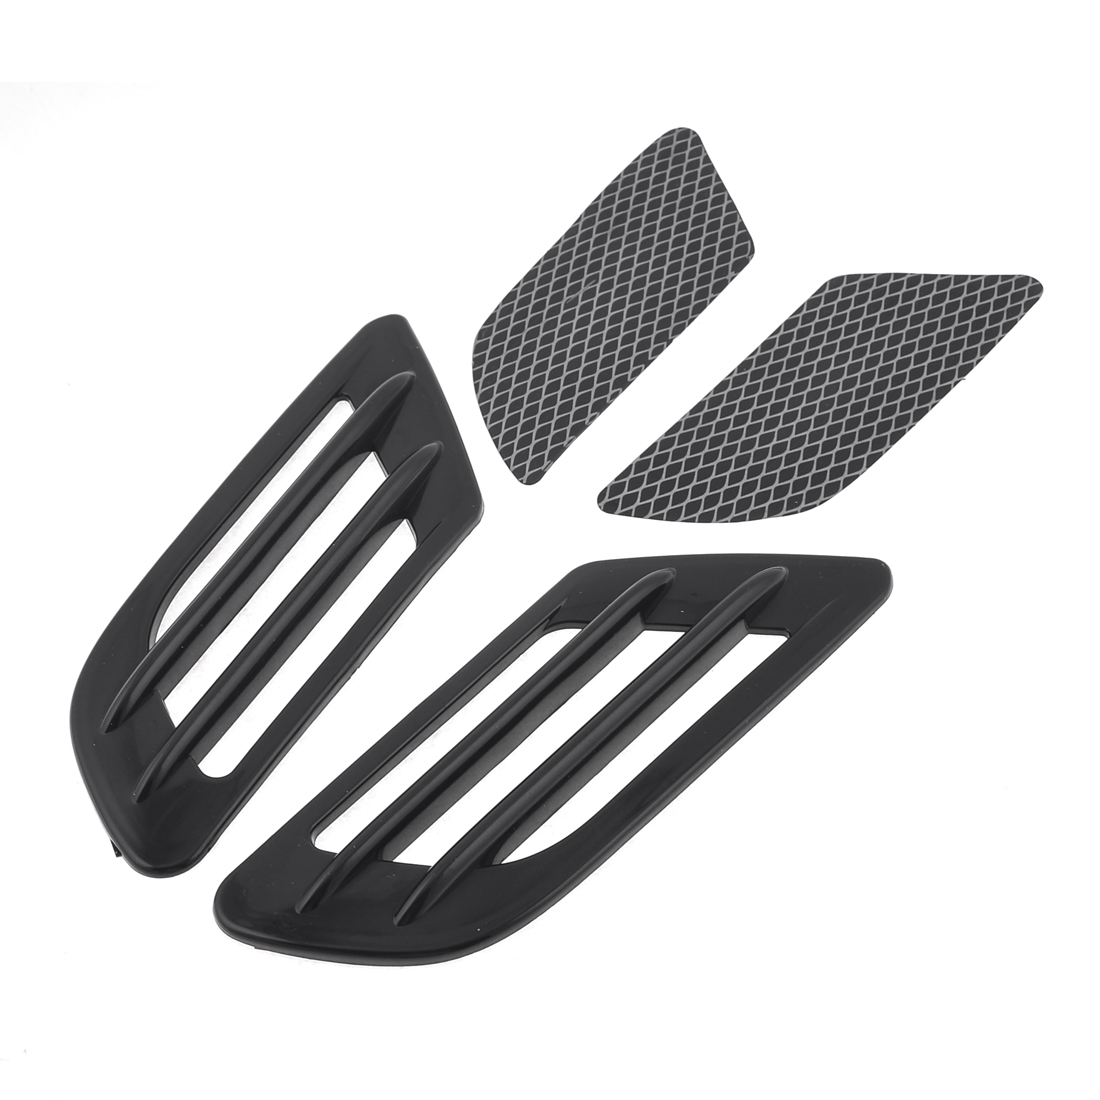 Car Auto Self Adhesive Side Vent Air Flow Fender Intake Stickers Black 2 Pcs